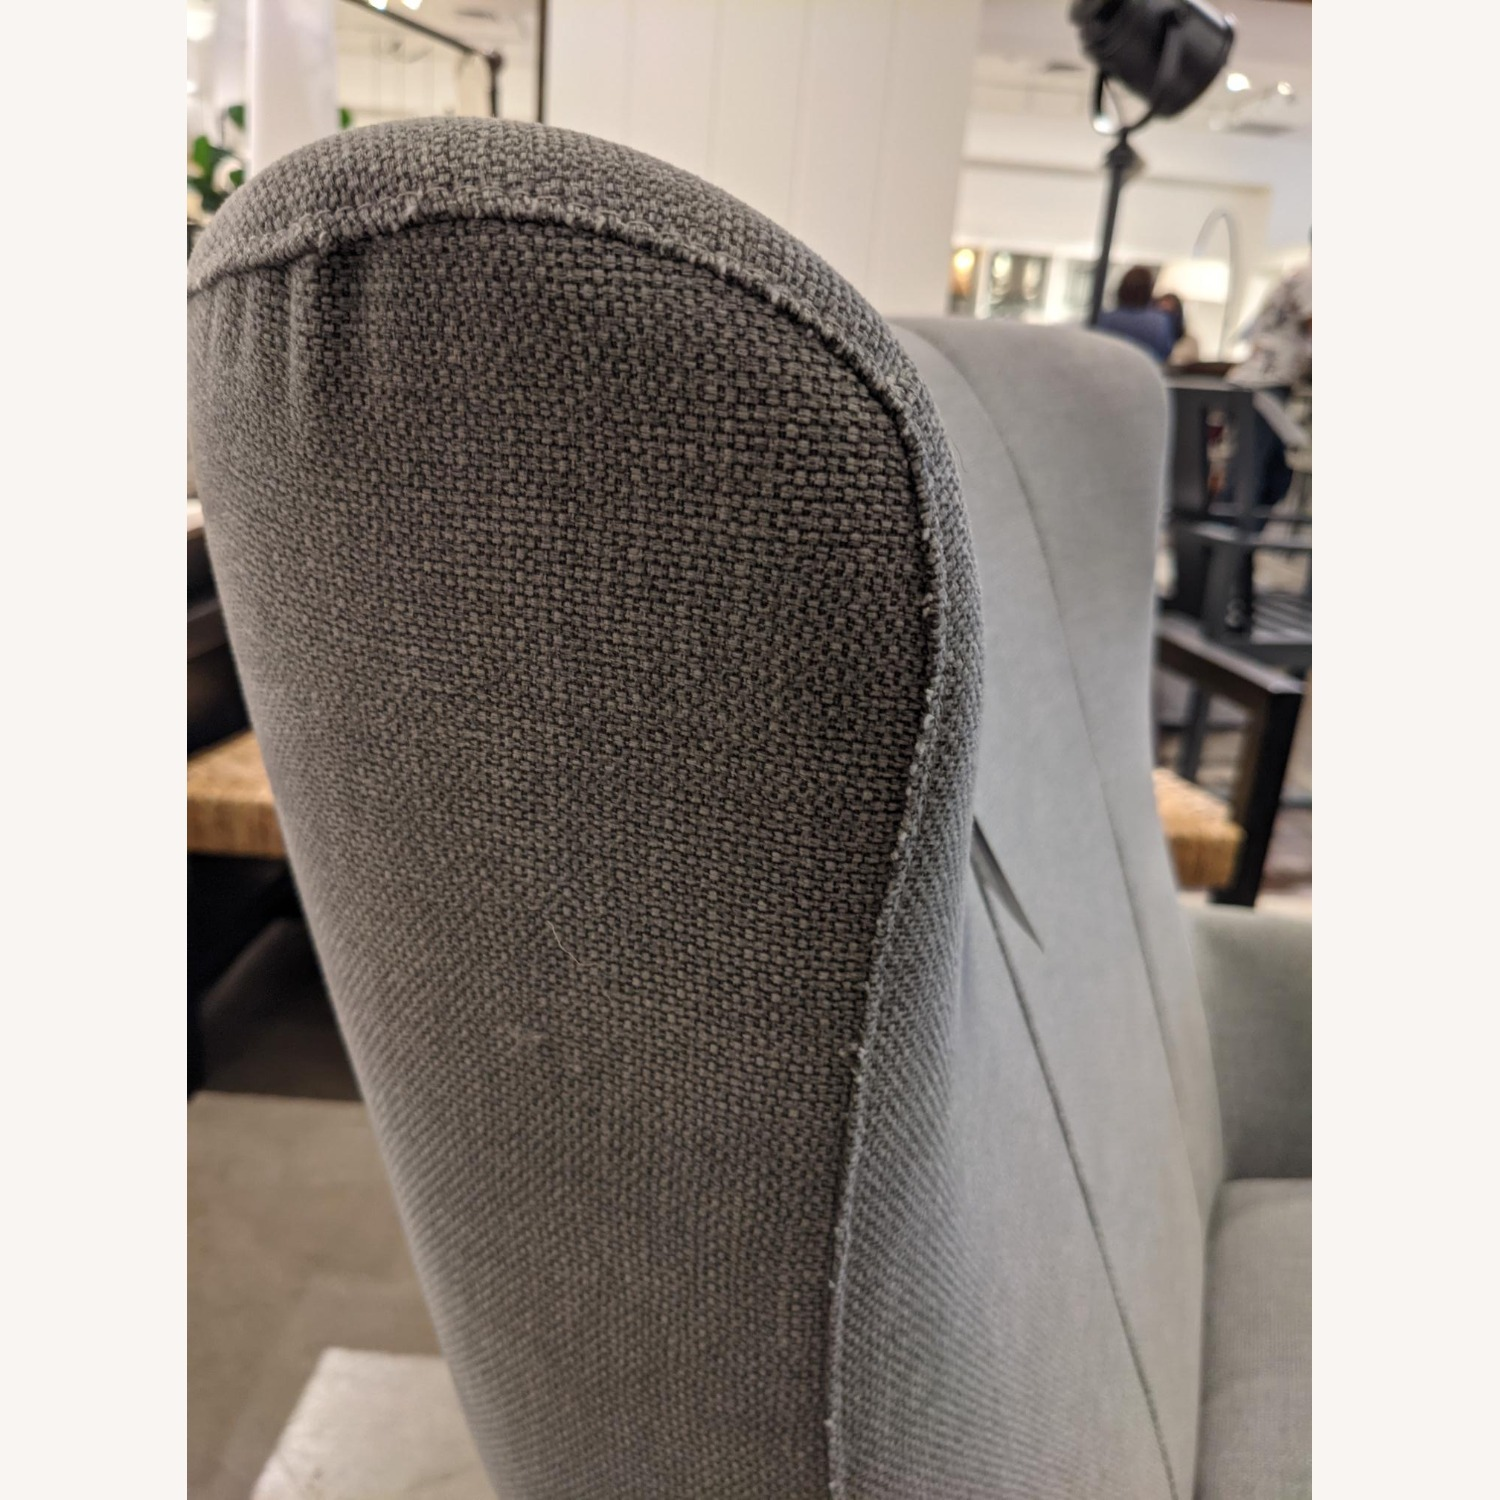 Pottery Barn Wells Tight Back Petite Armchair - image-5